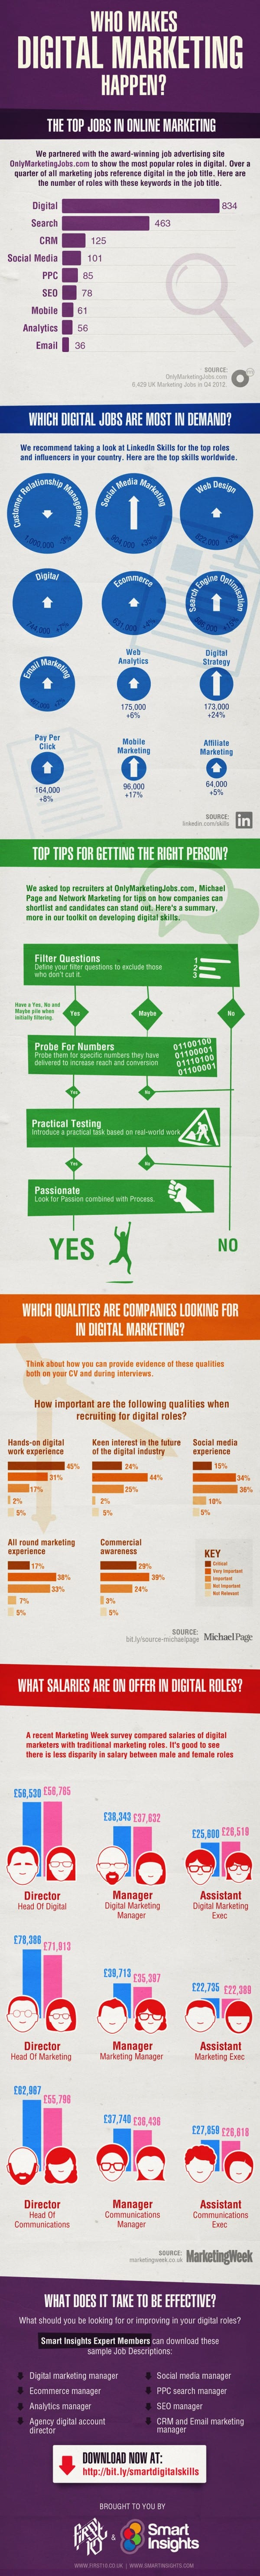 Digital marketing Jobs infographic